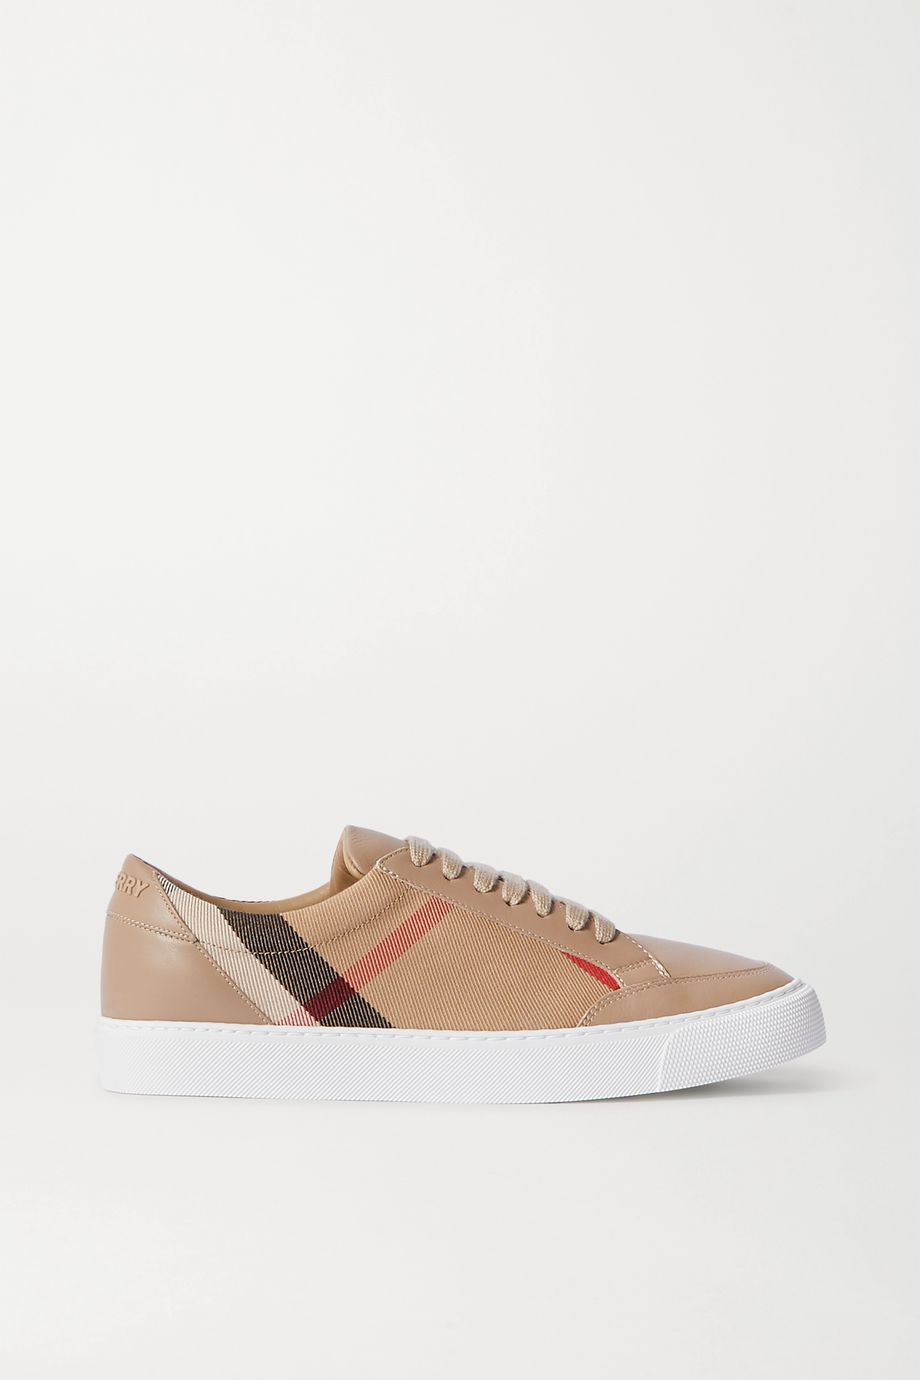 Burberry Leather and checked canvas sneakers